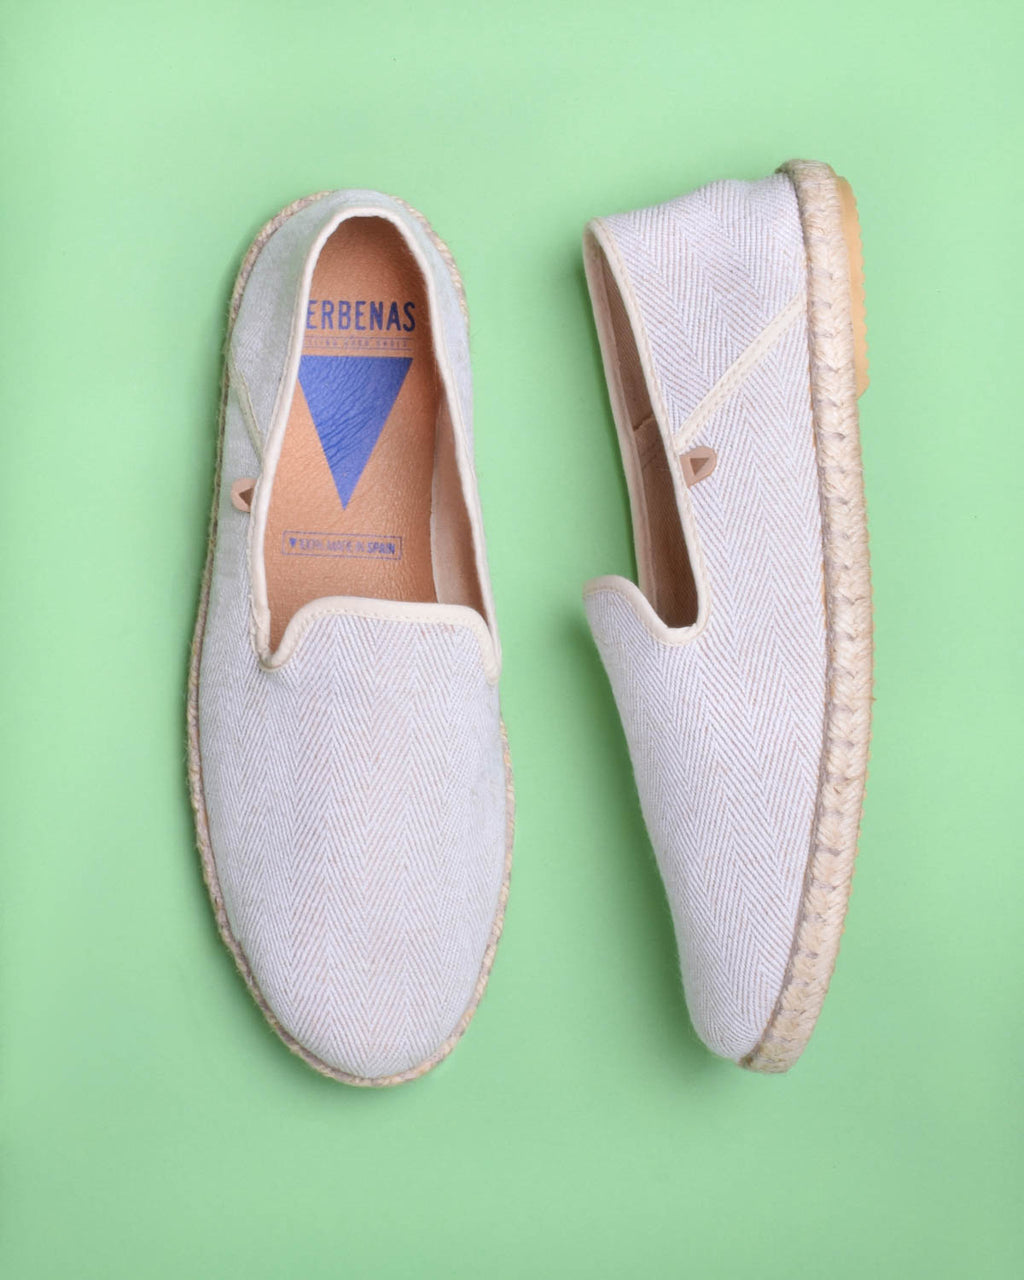 Trevor Chevron Canvas Slip On Shoes - Beige - Verbenas USA